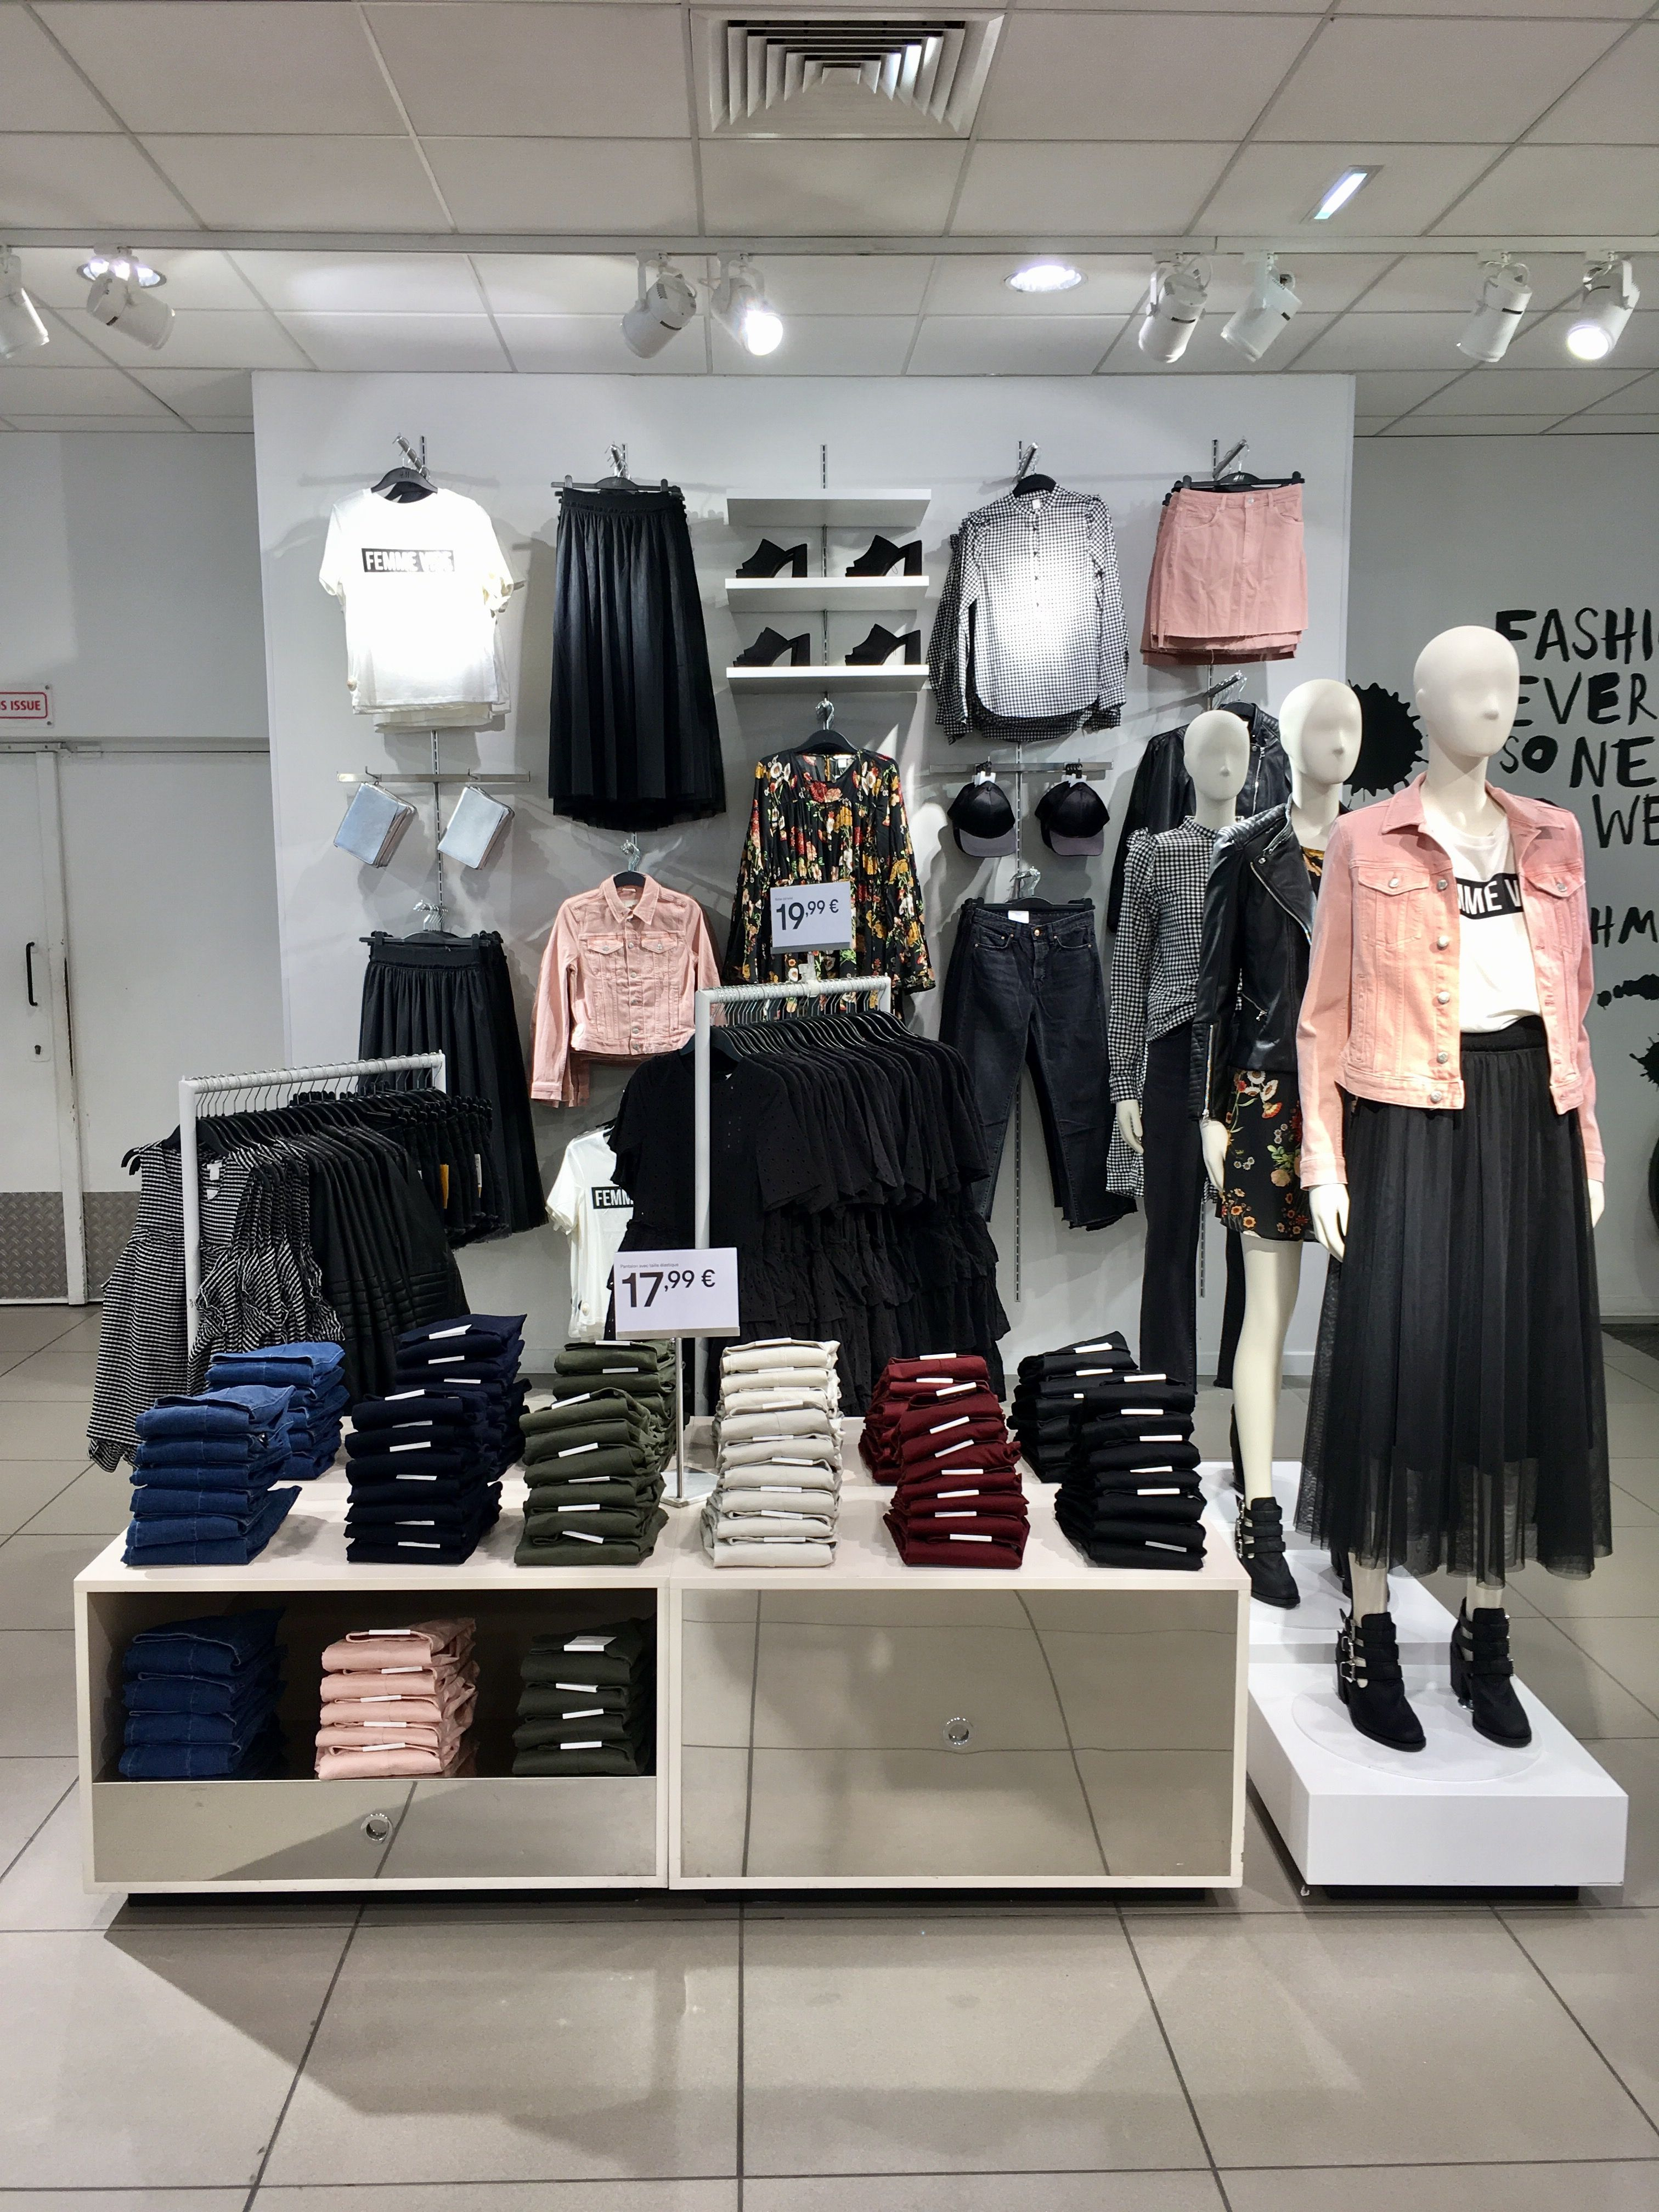 "as fashion merchandiser ""the glitz at fashion shows and on the pages of the fashion magazines is the culmination of many creative and analytical activities, market research, and hard work."